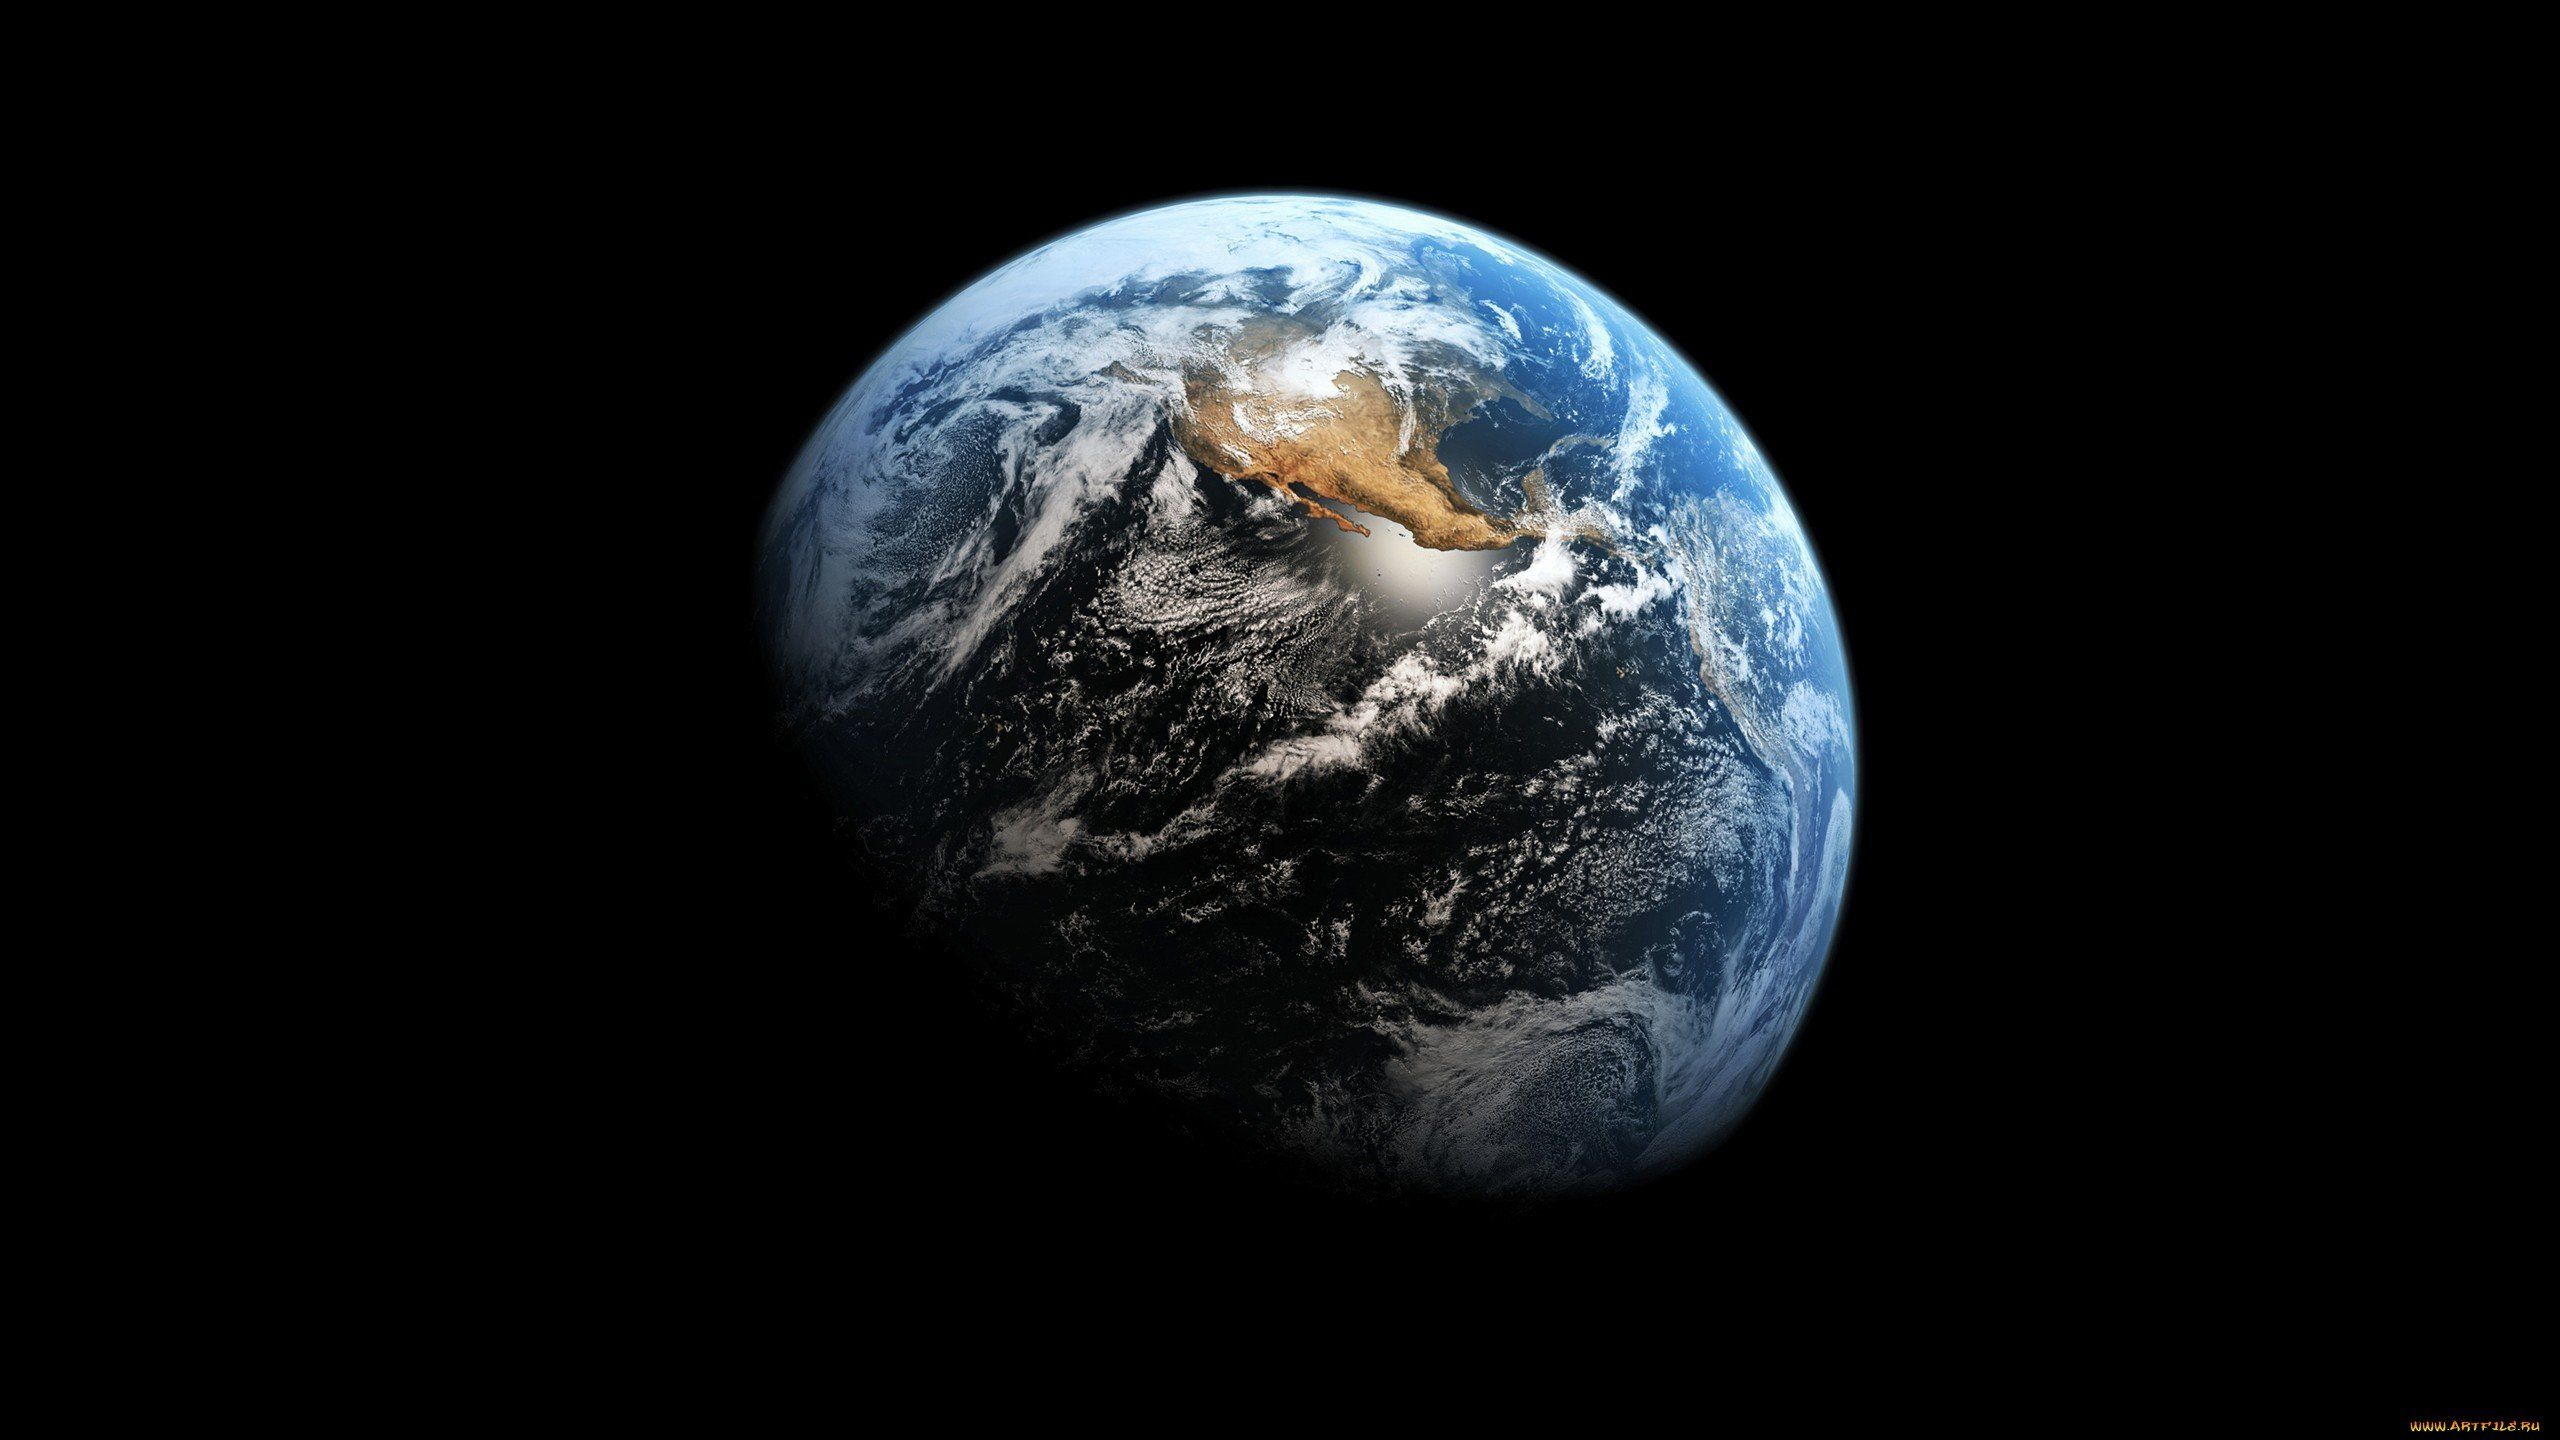 earth from space nasa wallpaper. | hd wallpapers | pinterest | hd